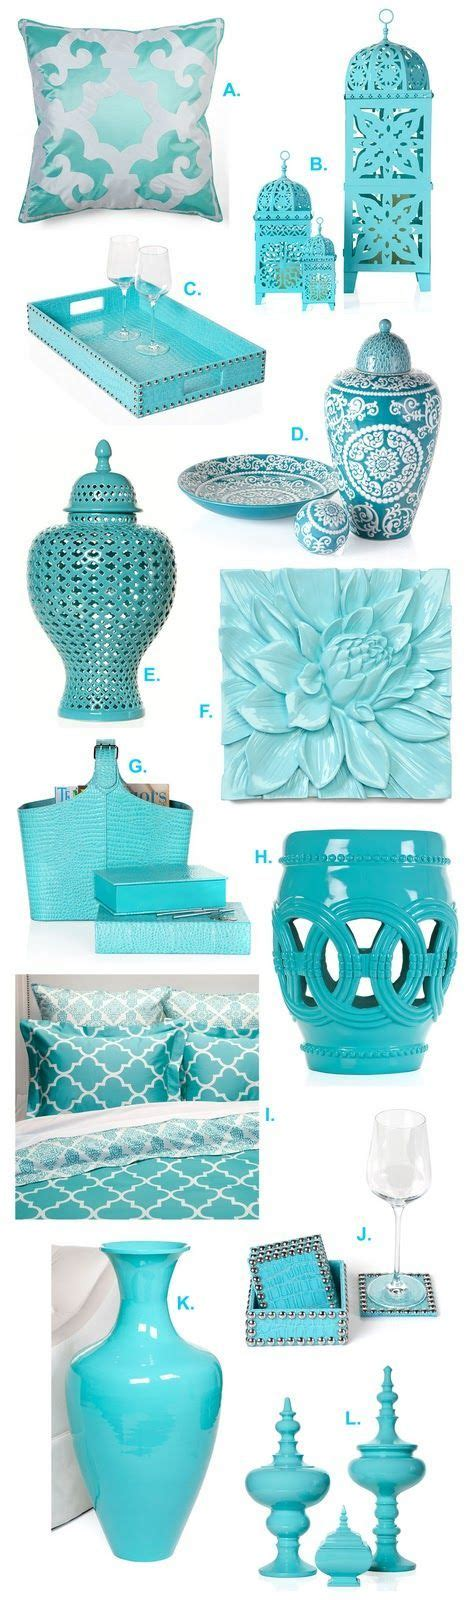 turquoise kitchen accessories 1000 ideas about teal kitchen decor on teal 2967